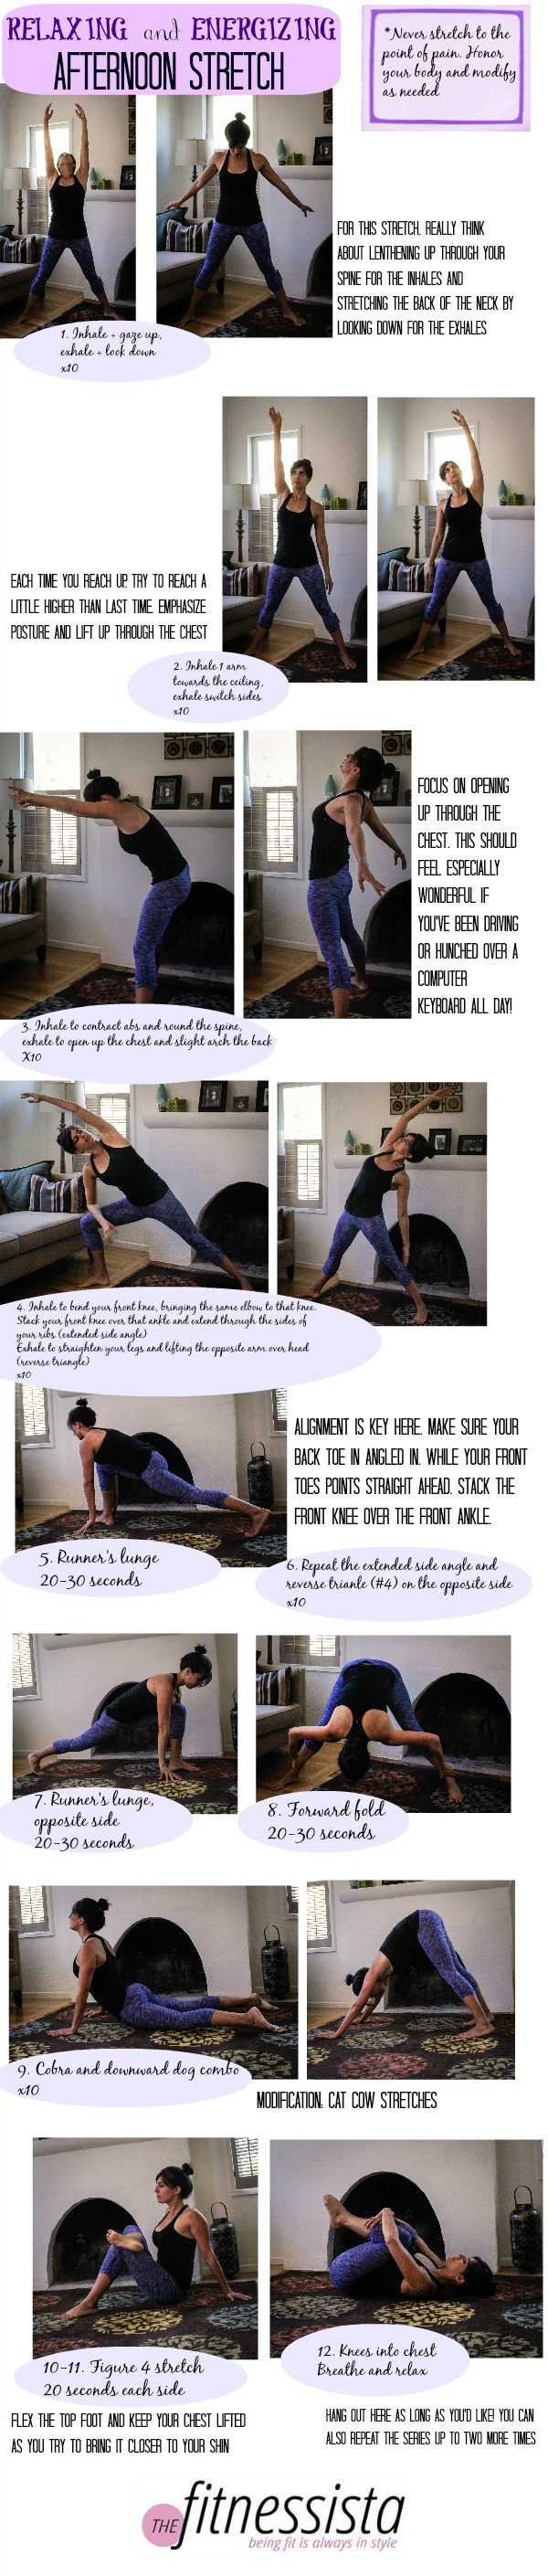 Relaxing and energizing stretch